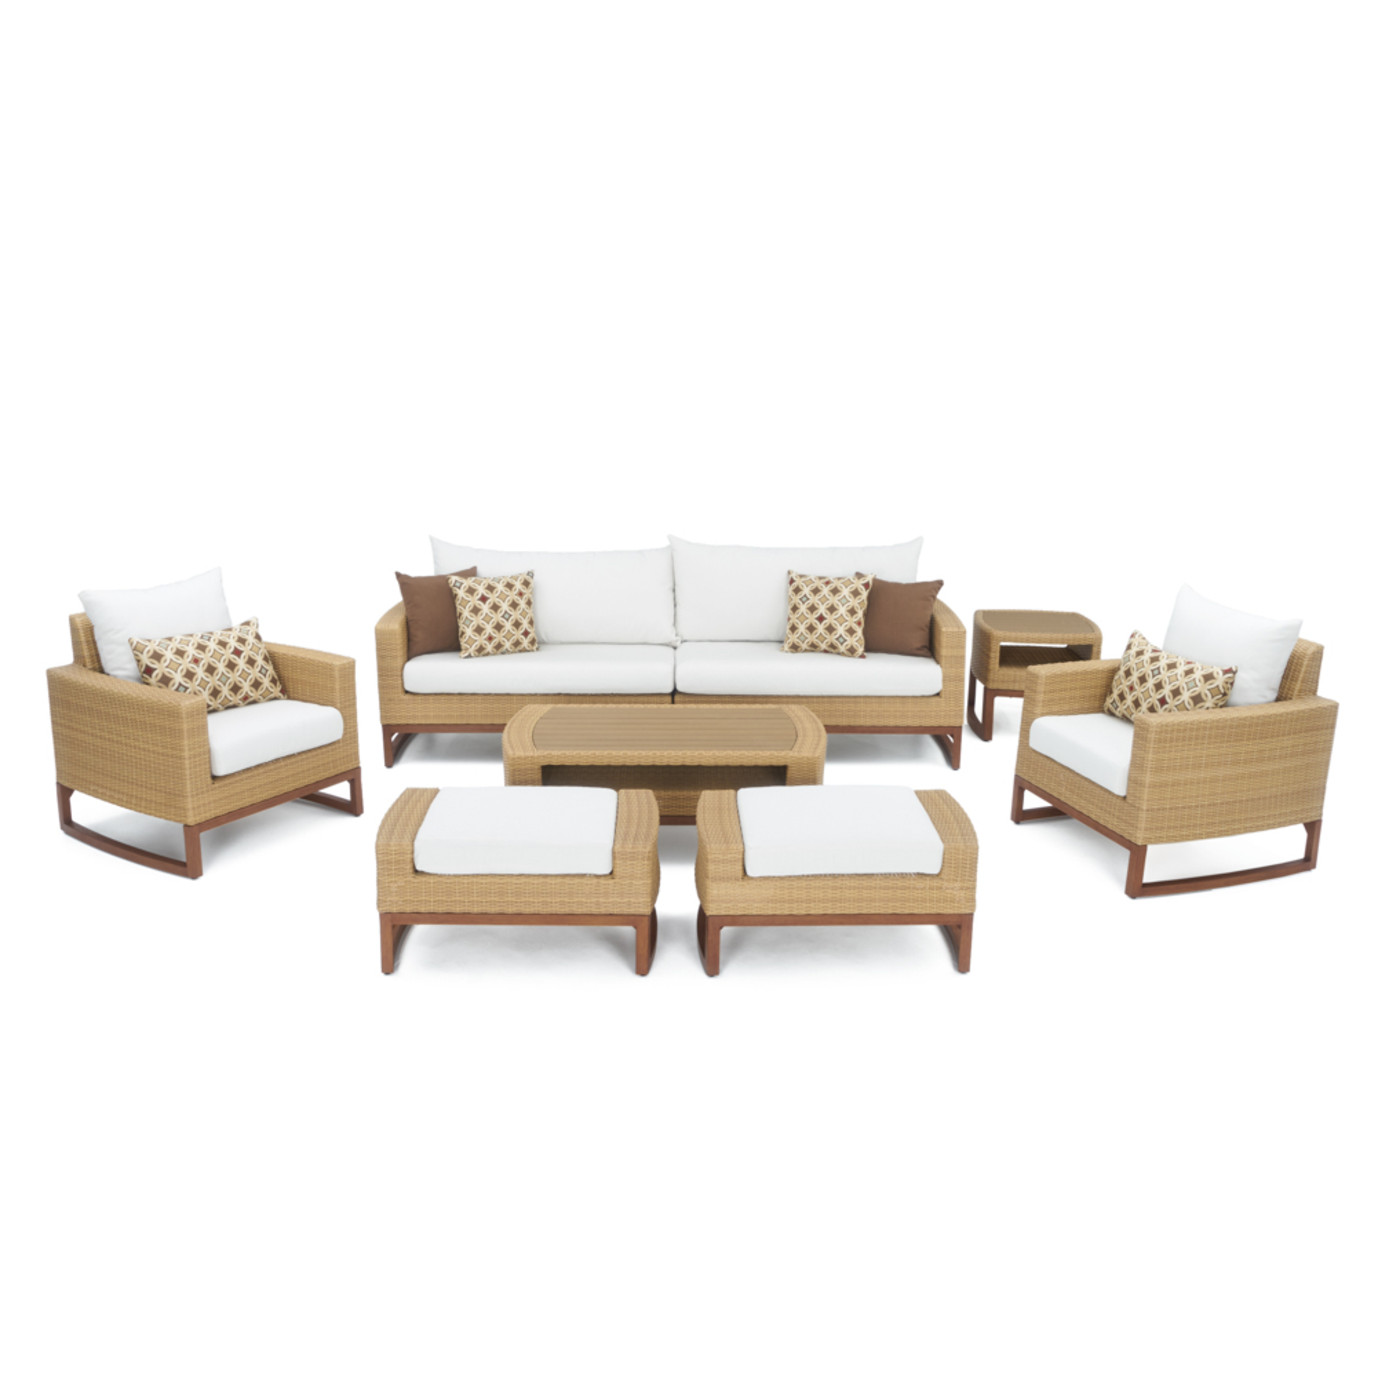 Mili™ 8 Piece Deep Seating Set - Moroccan Cream